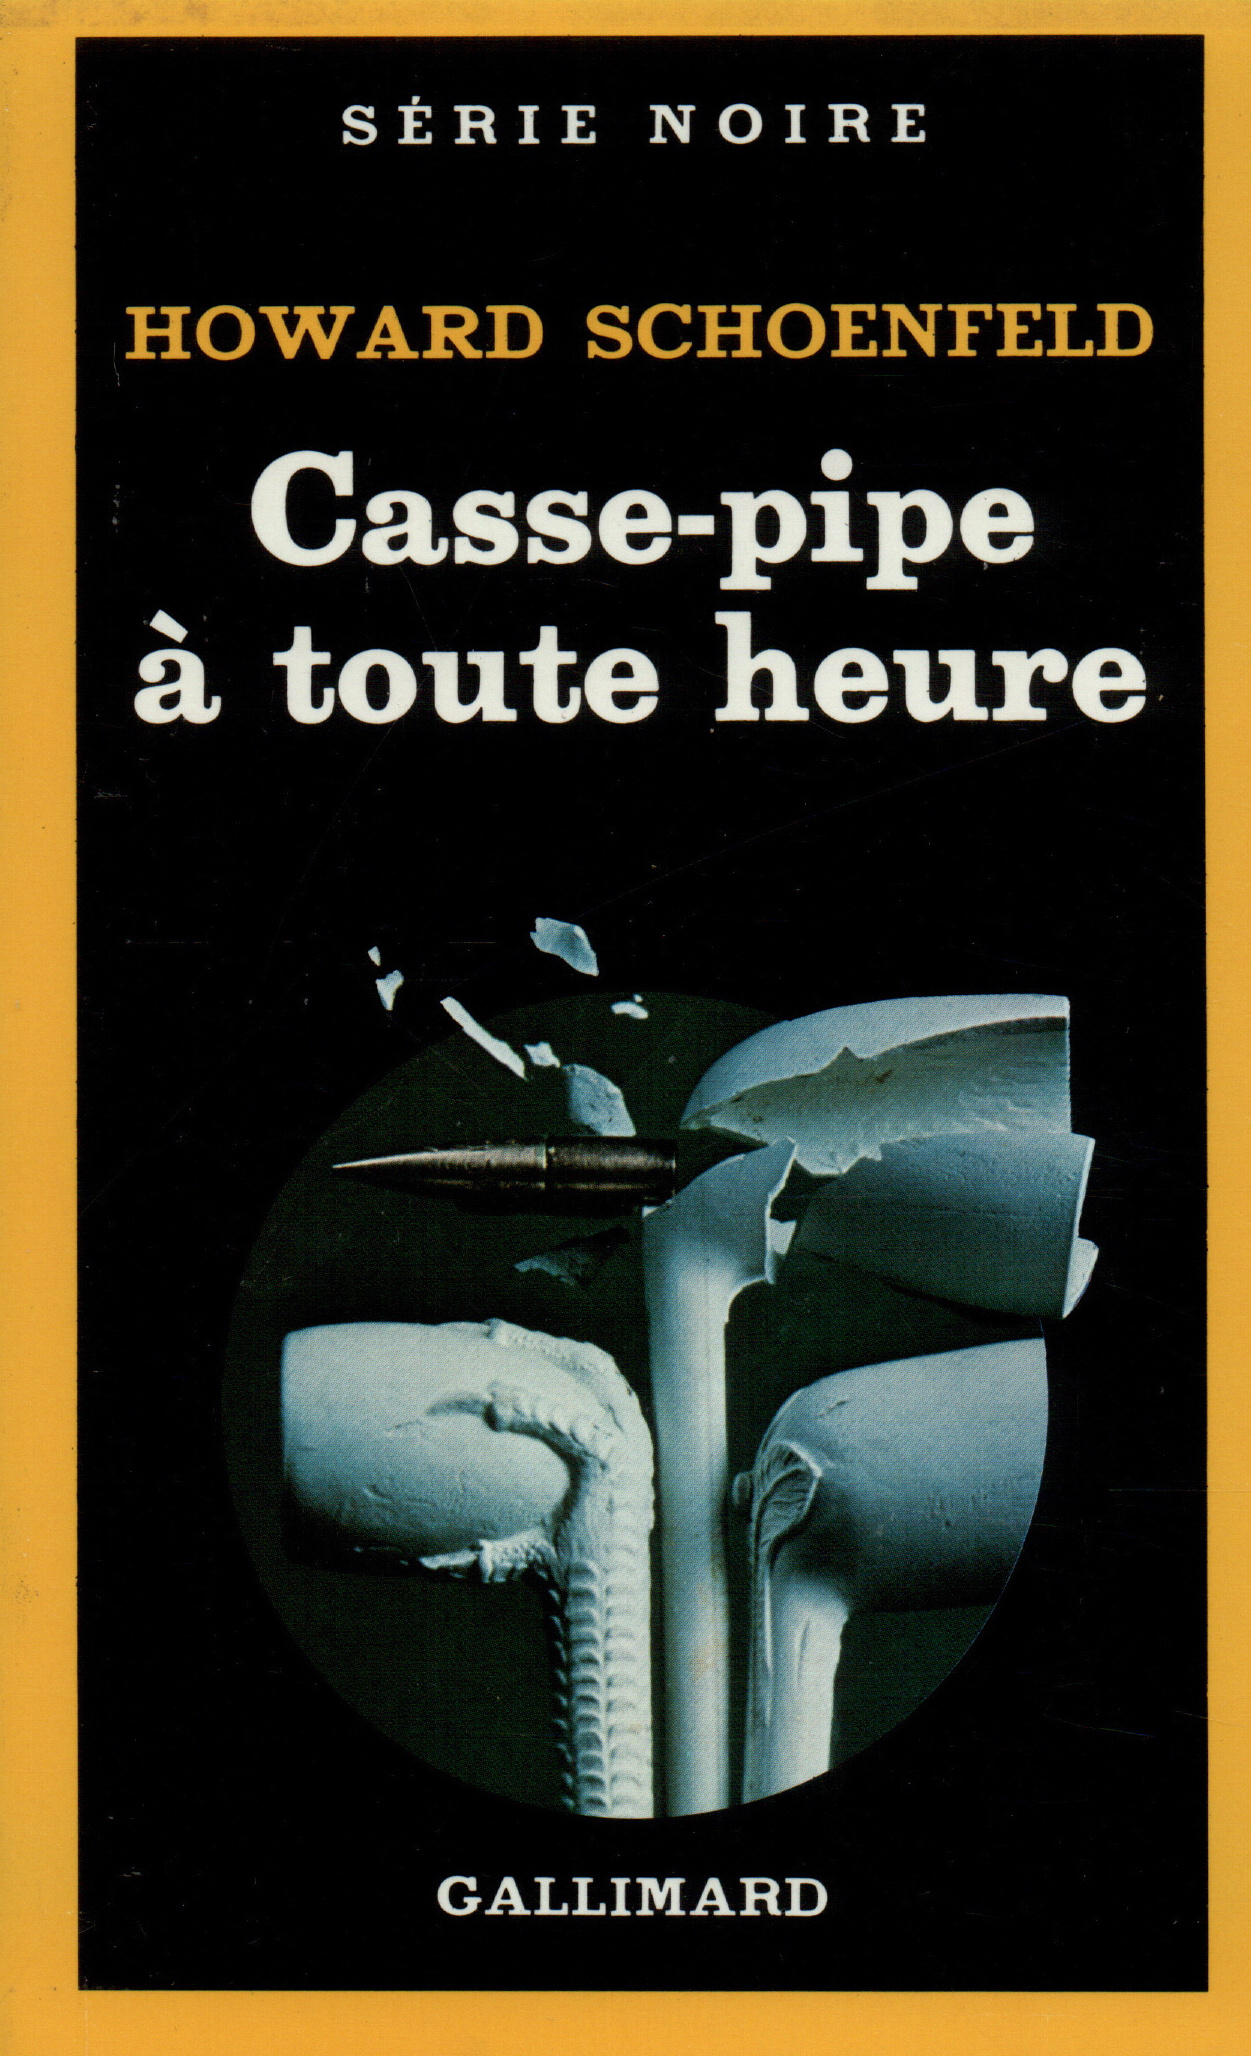 CASSE-PIPE A TOUTE HEURE